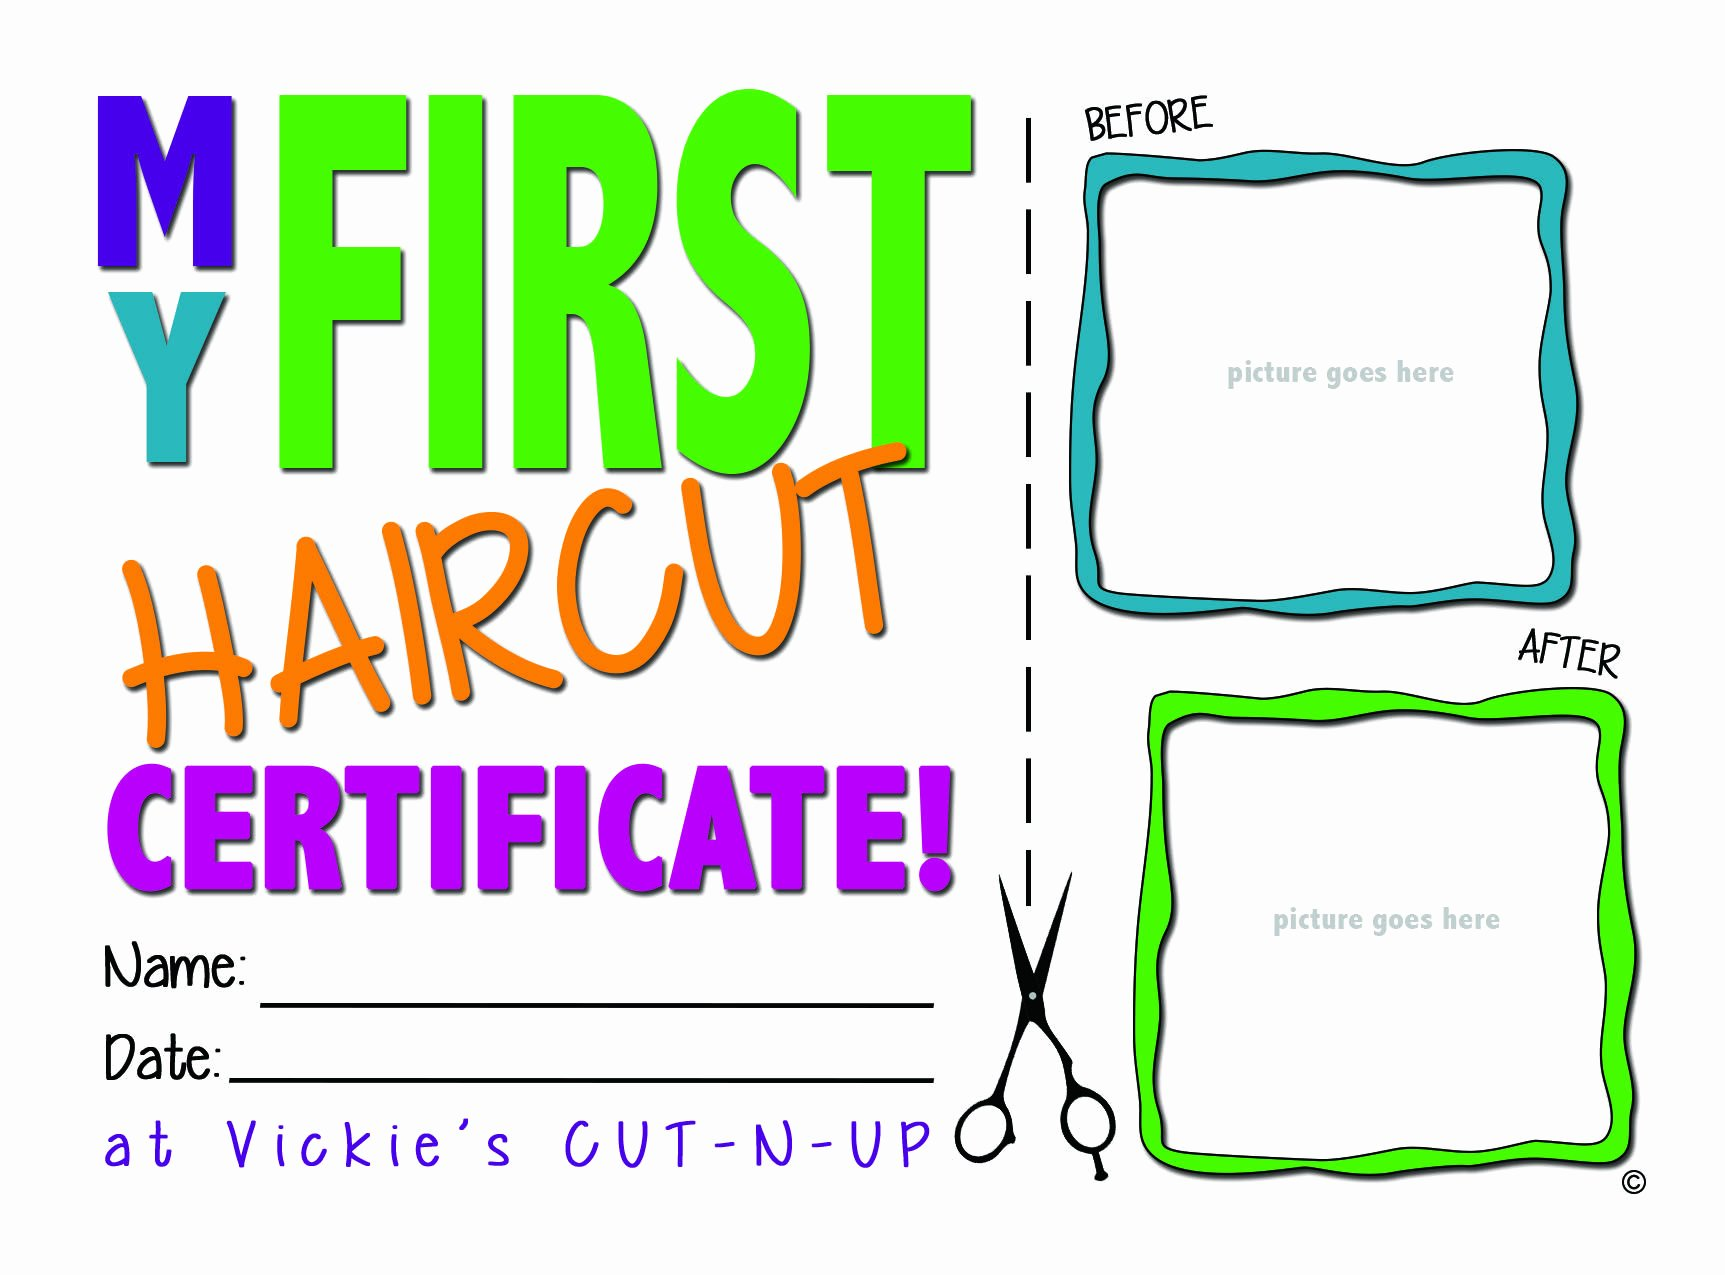 First Haircut Certificate Template Fresh Printable Haircut Certificates Creativehobbyore